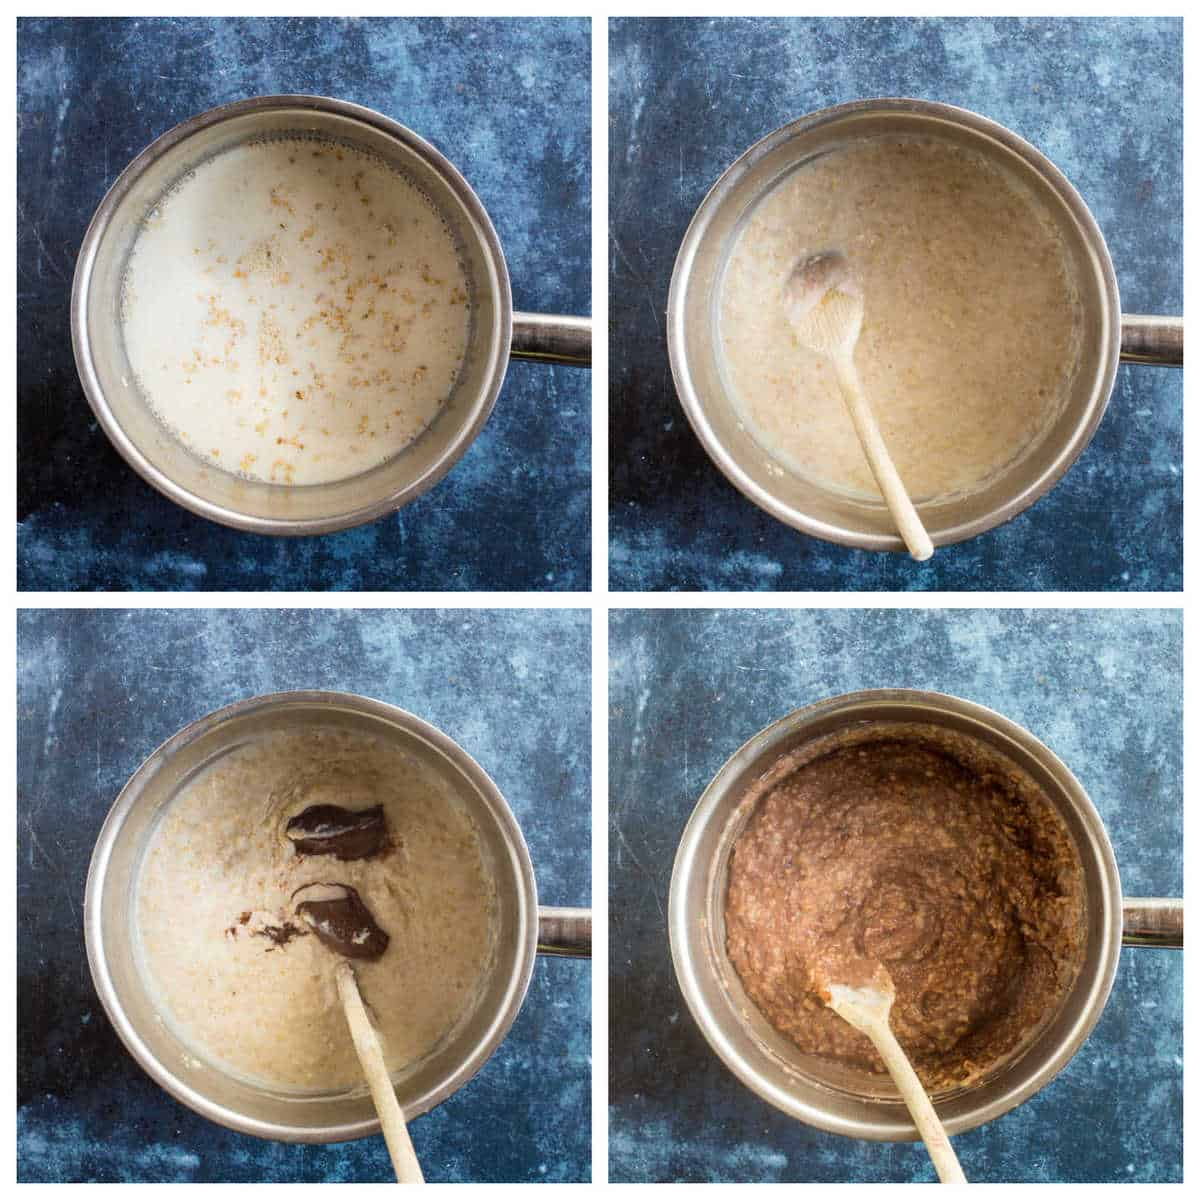 Step by step photo instructions for making Nutella oatmeal.